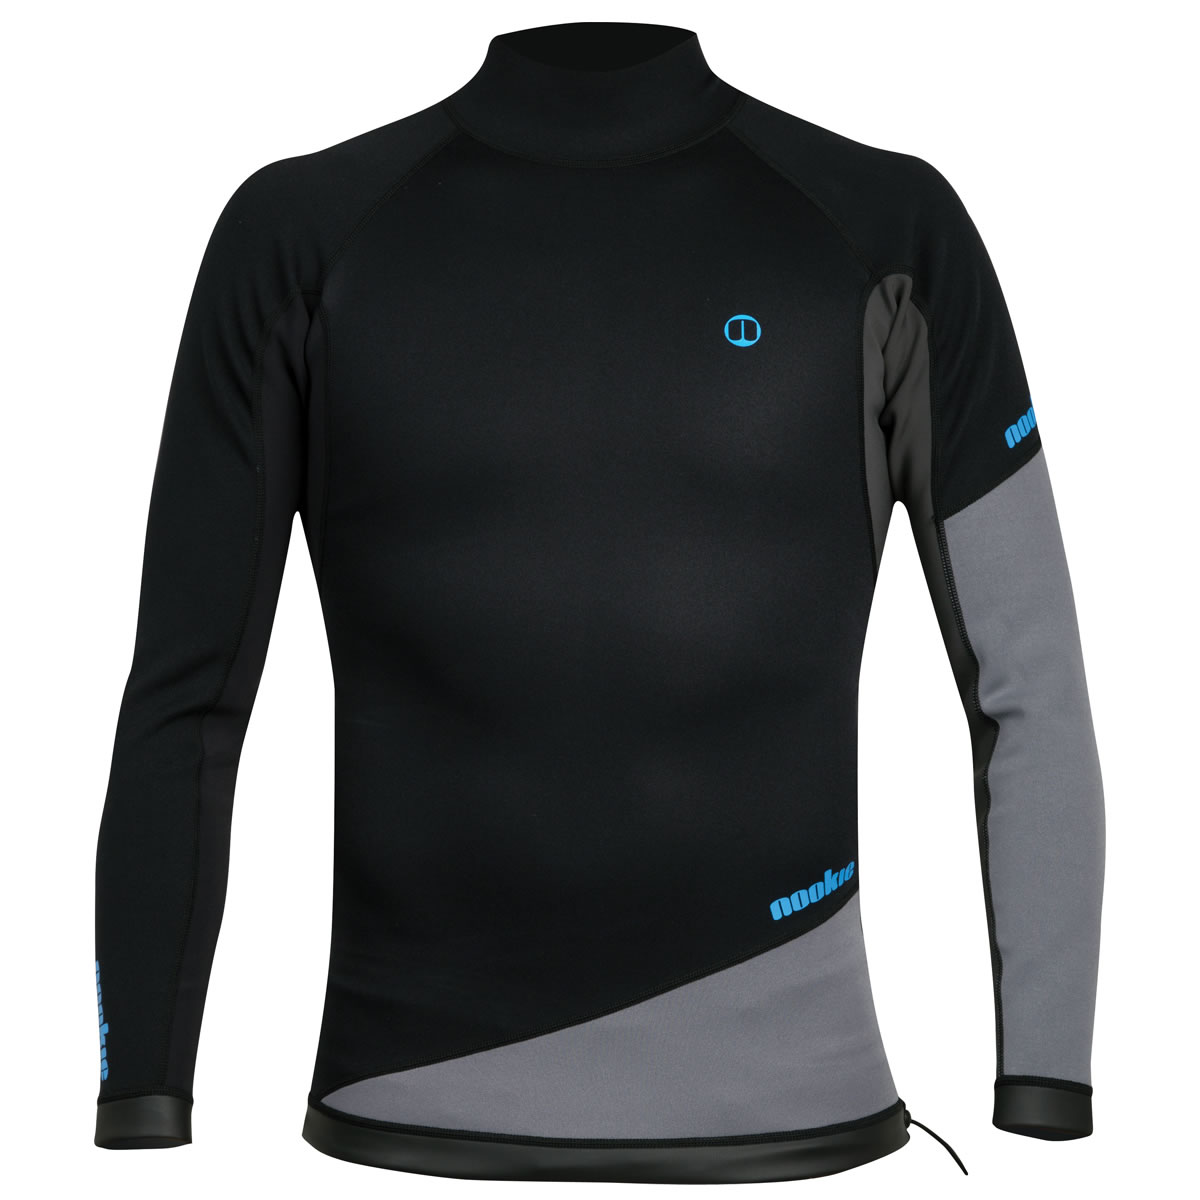 Nookie 1mm Neoprene Wetsuit Ti-Vest Long Sleeve